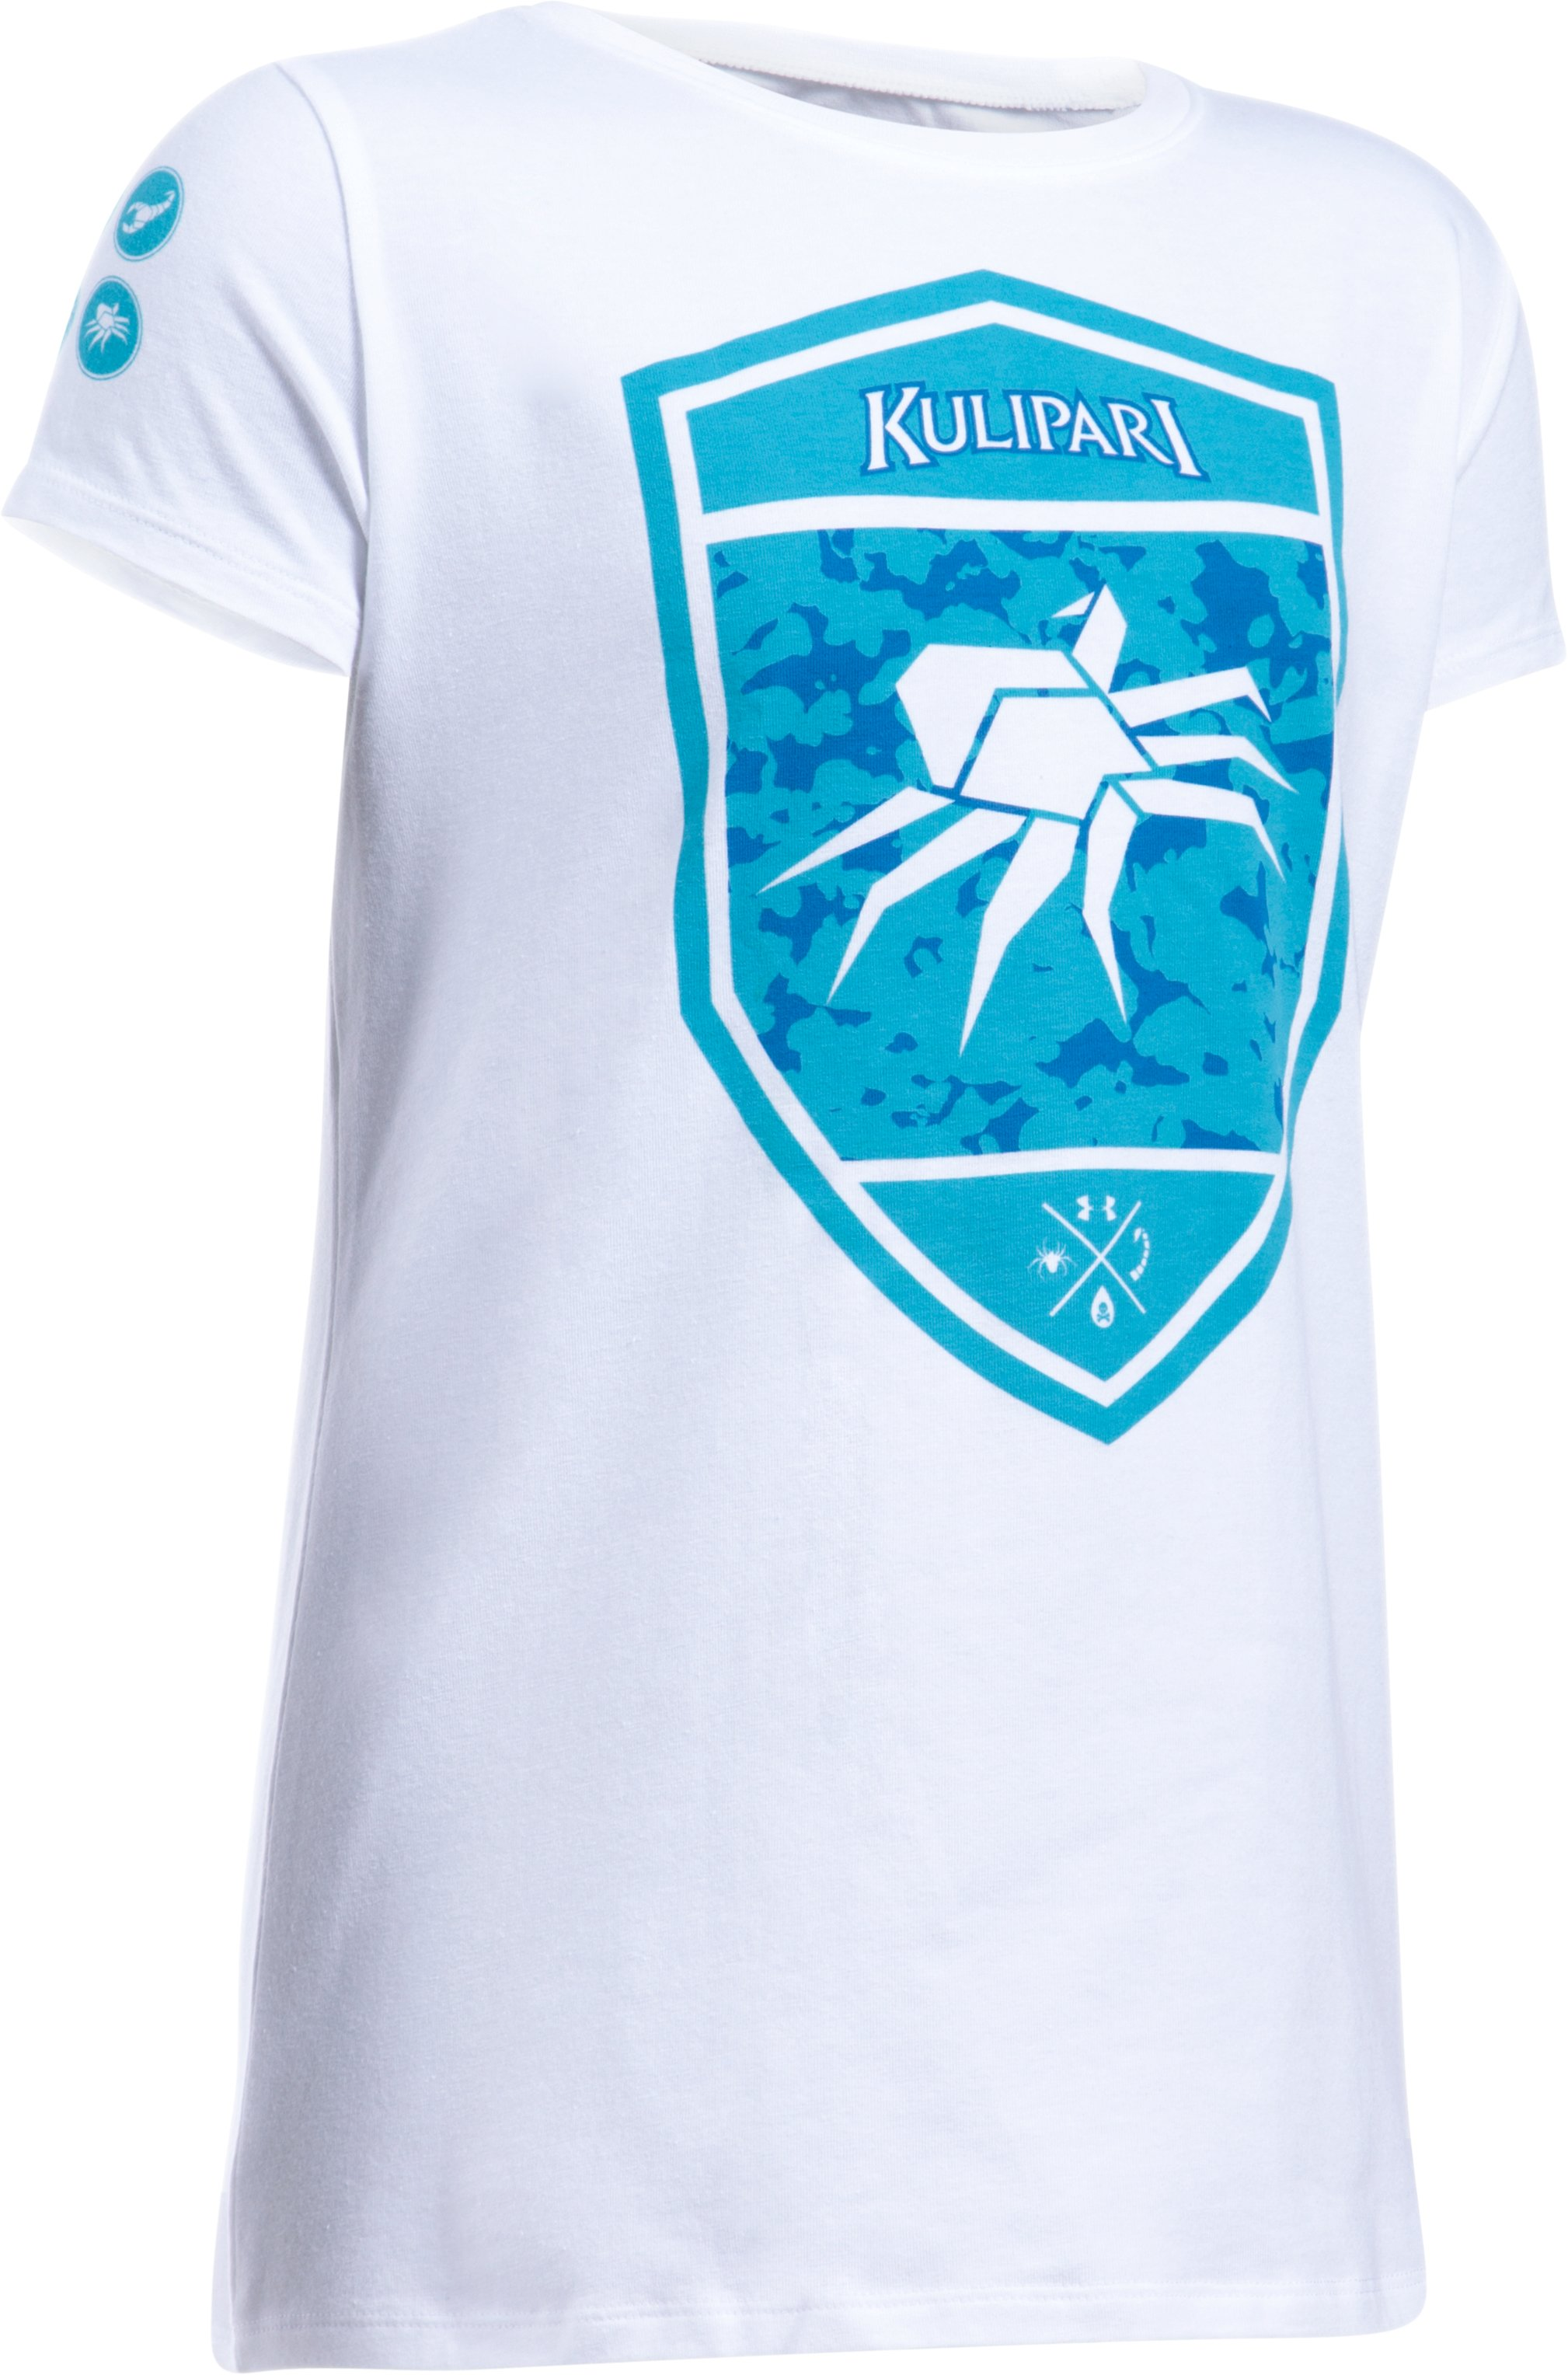 Girls' UA Kulipari Spider Short Sleeve T-Shirt, White